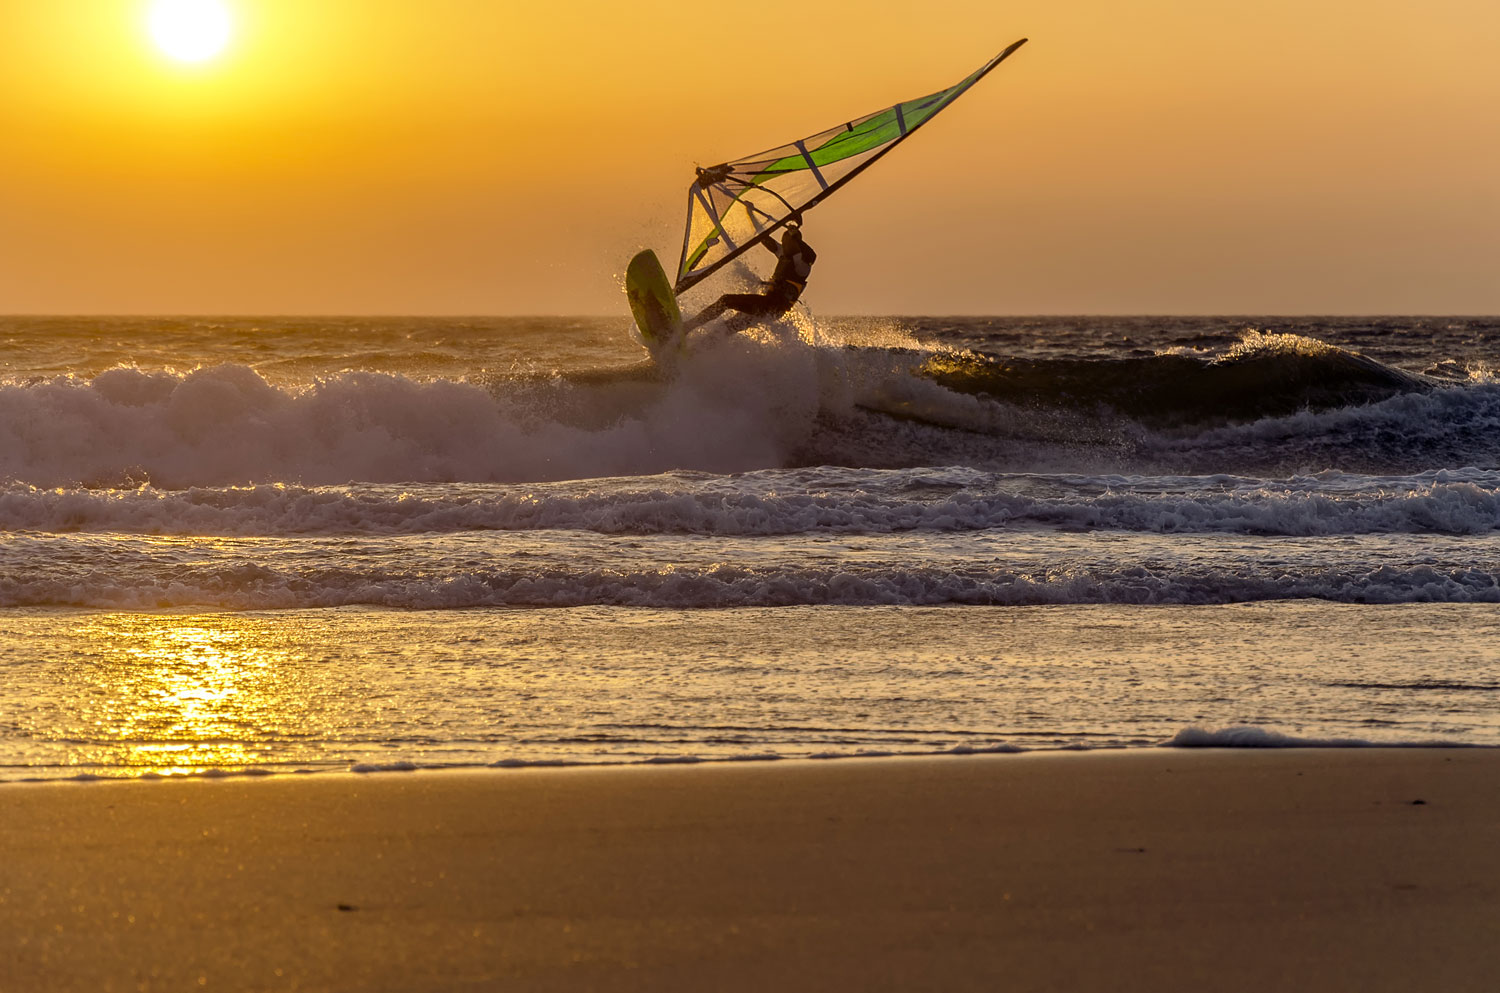 Windsurfer Speeding Fast Against the Sunset